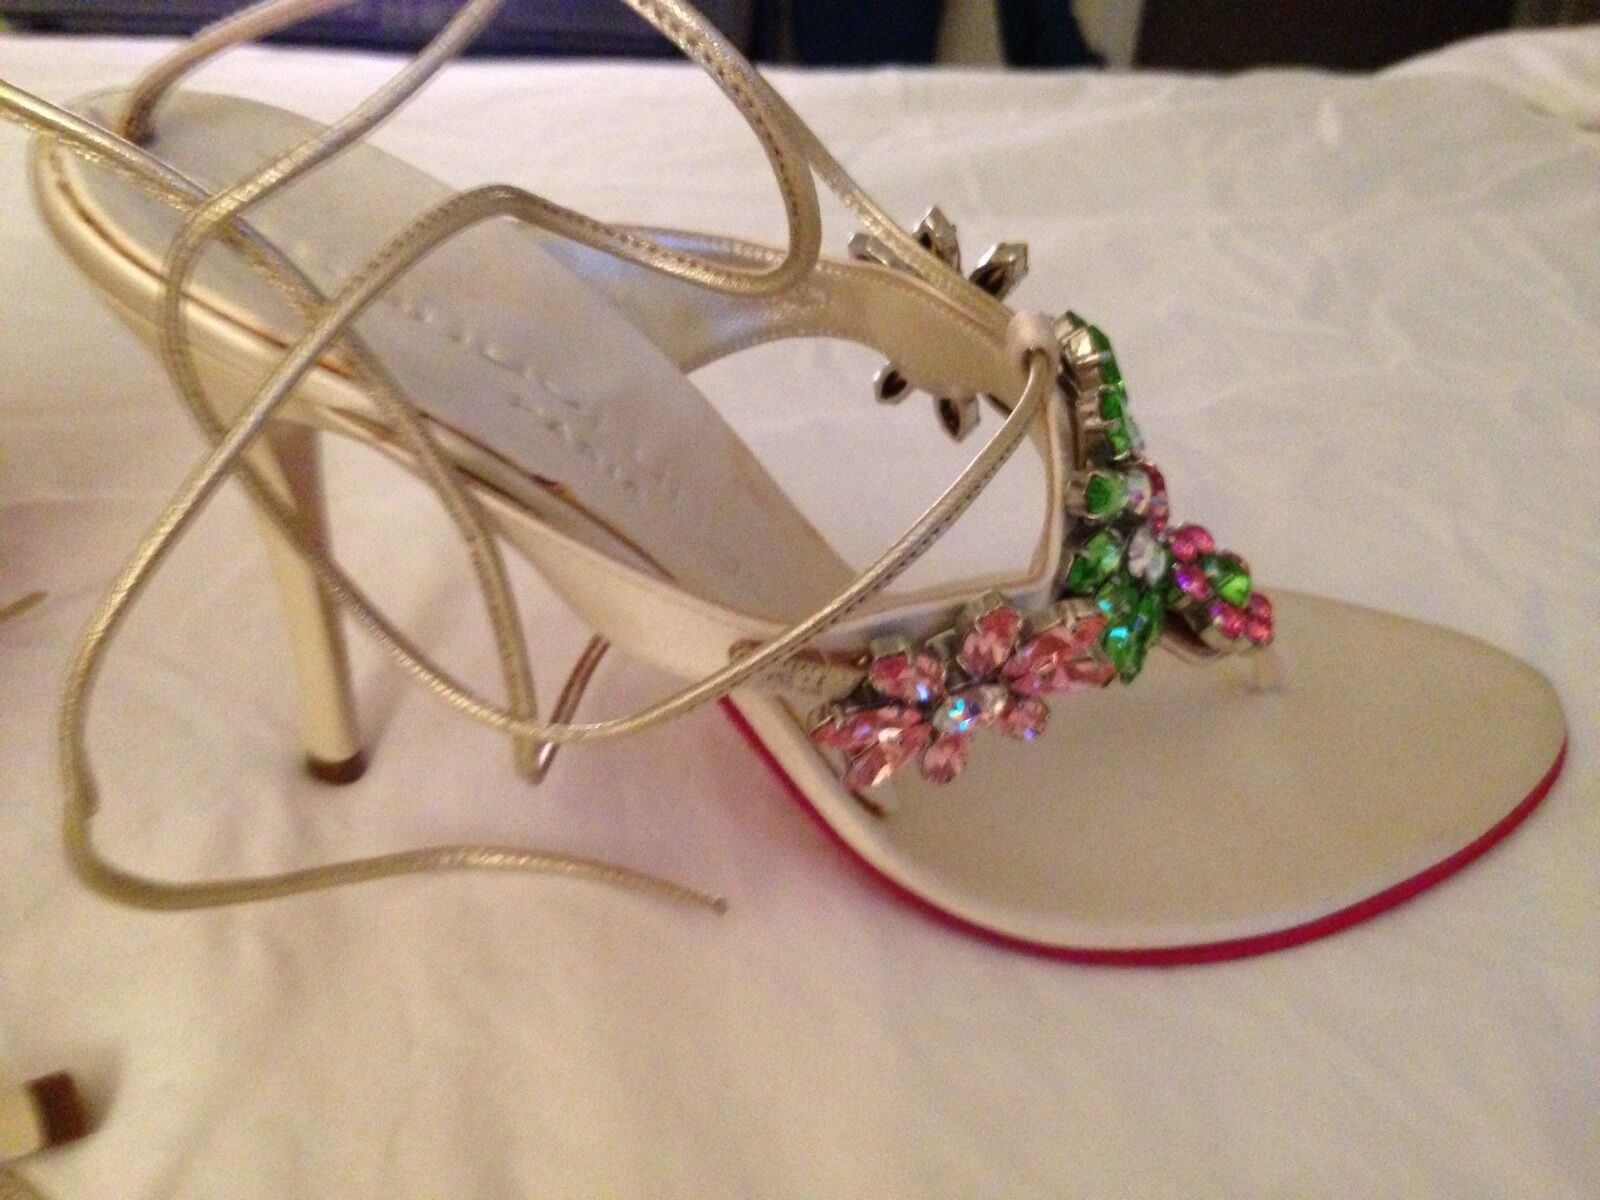 Emanuel Ankle Ungero mullti Color Crytal Ankle Emanuel Sandals High (3in and Up) Size 8.5 59e589